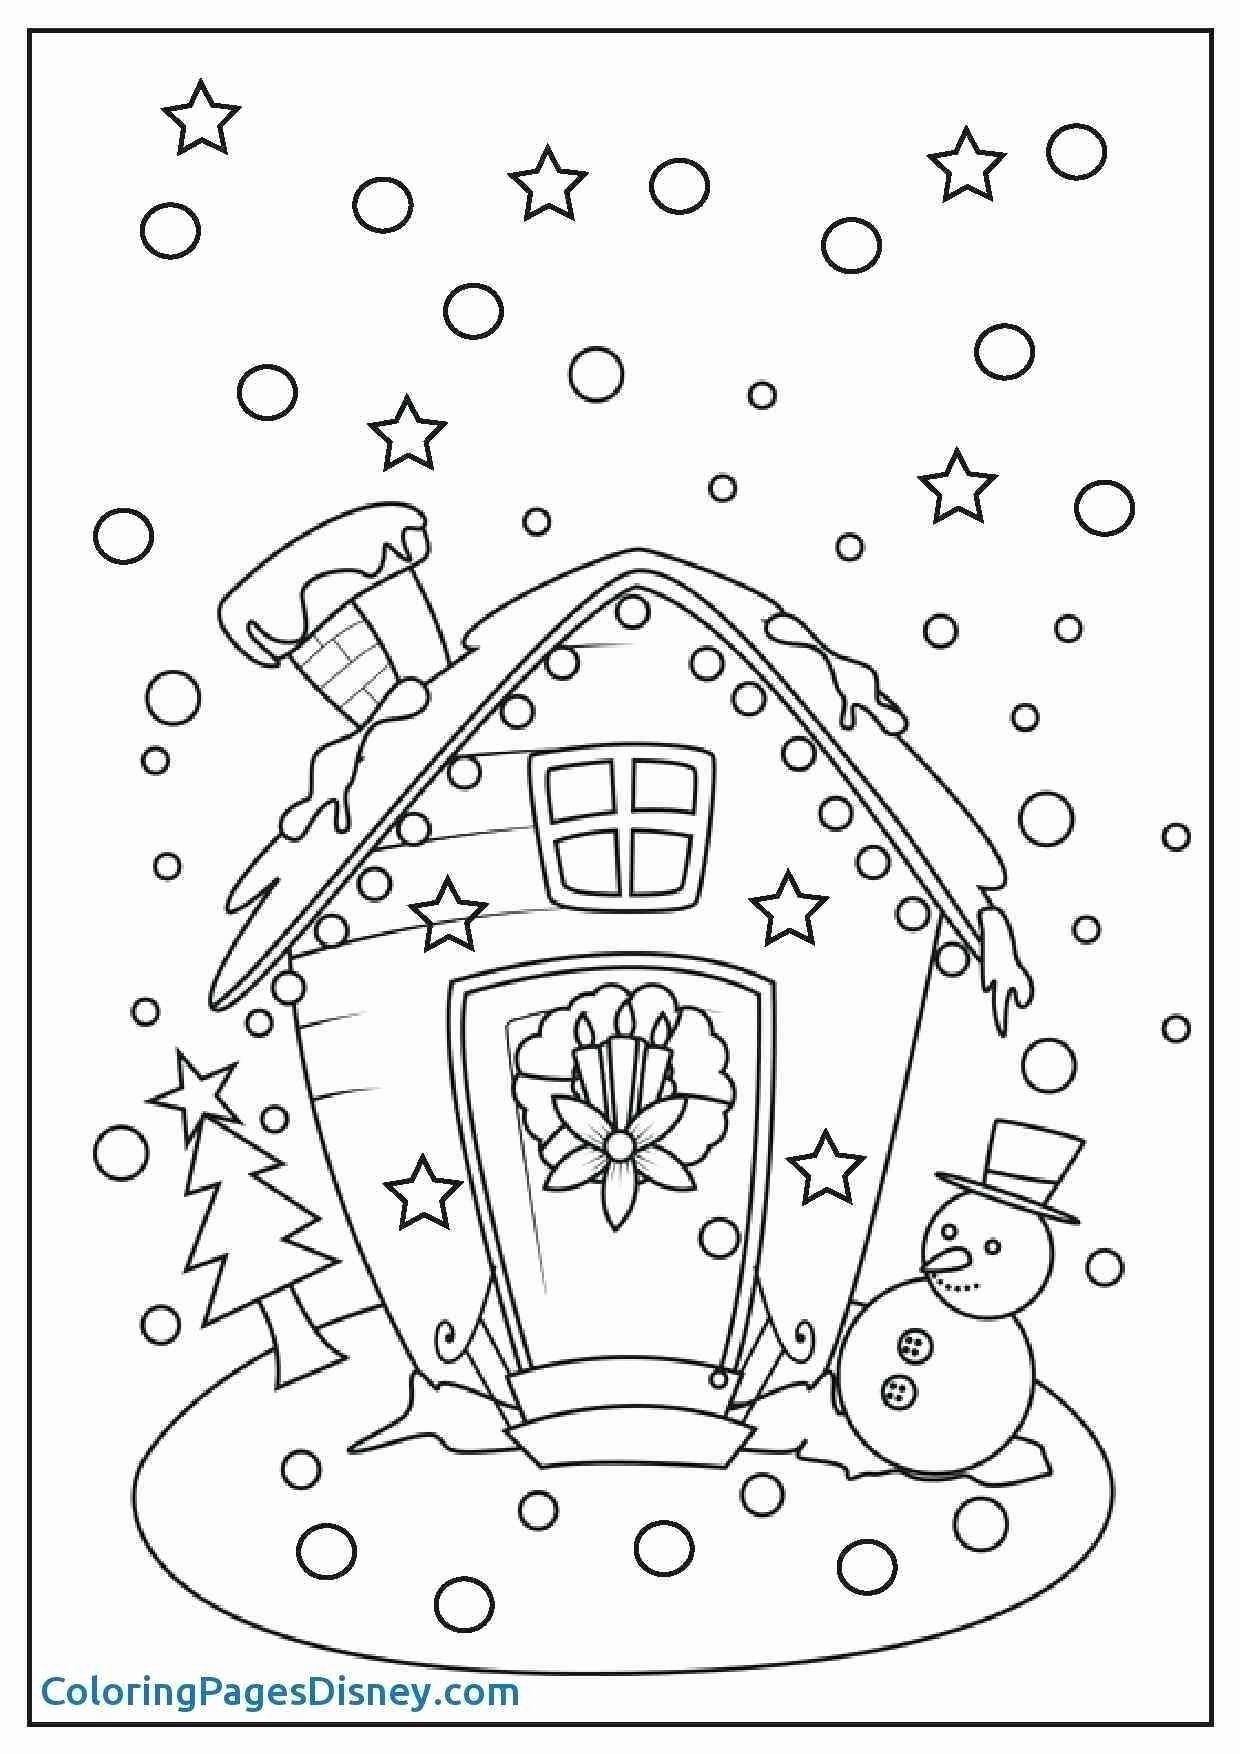 Disney Brave Coloring Page Luxury Kirby Coloring Pages Printable Christmas Coloring Pages Free Christmas Coloring Pages Christmas Coloring Sheets